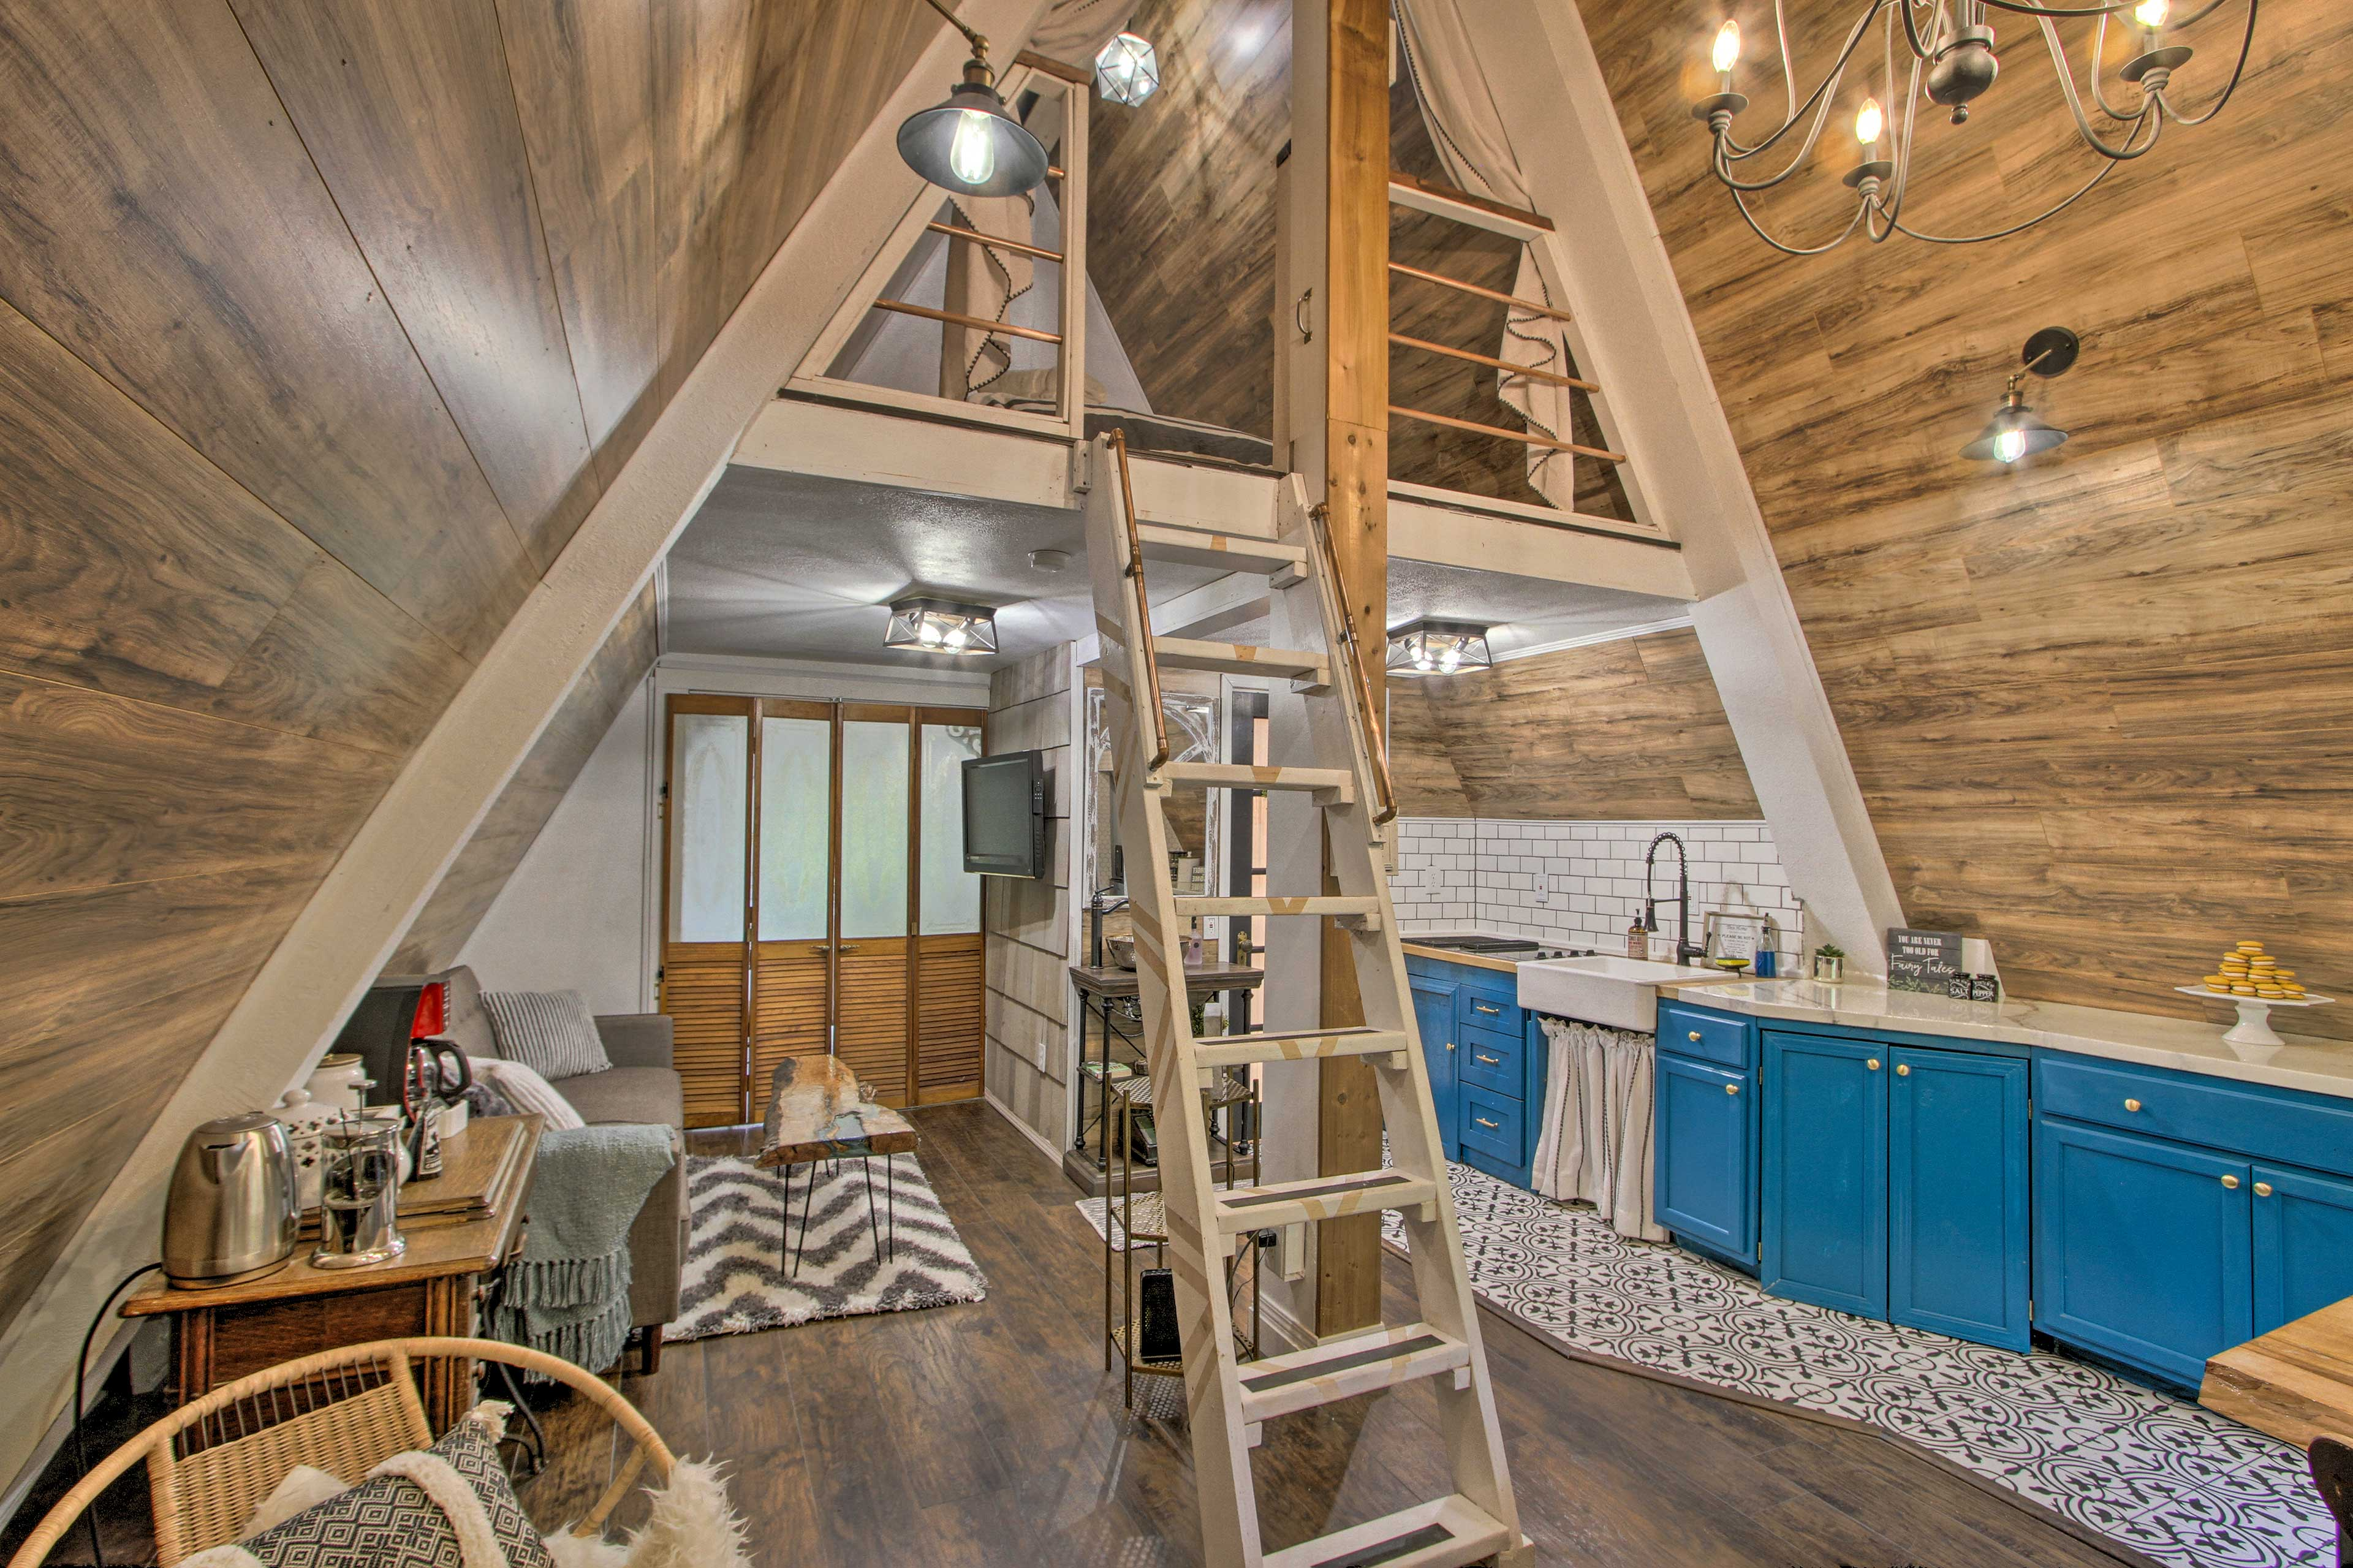 The cottage includes 1 bedroom, 1 bathroom, & a loft!